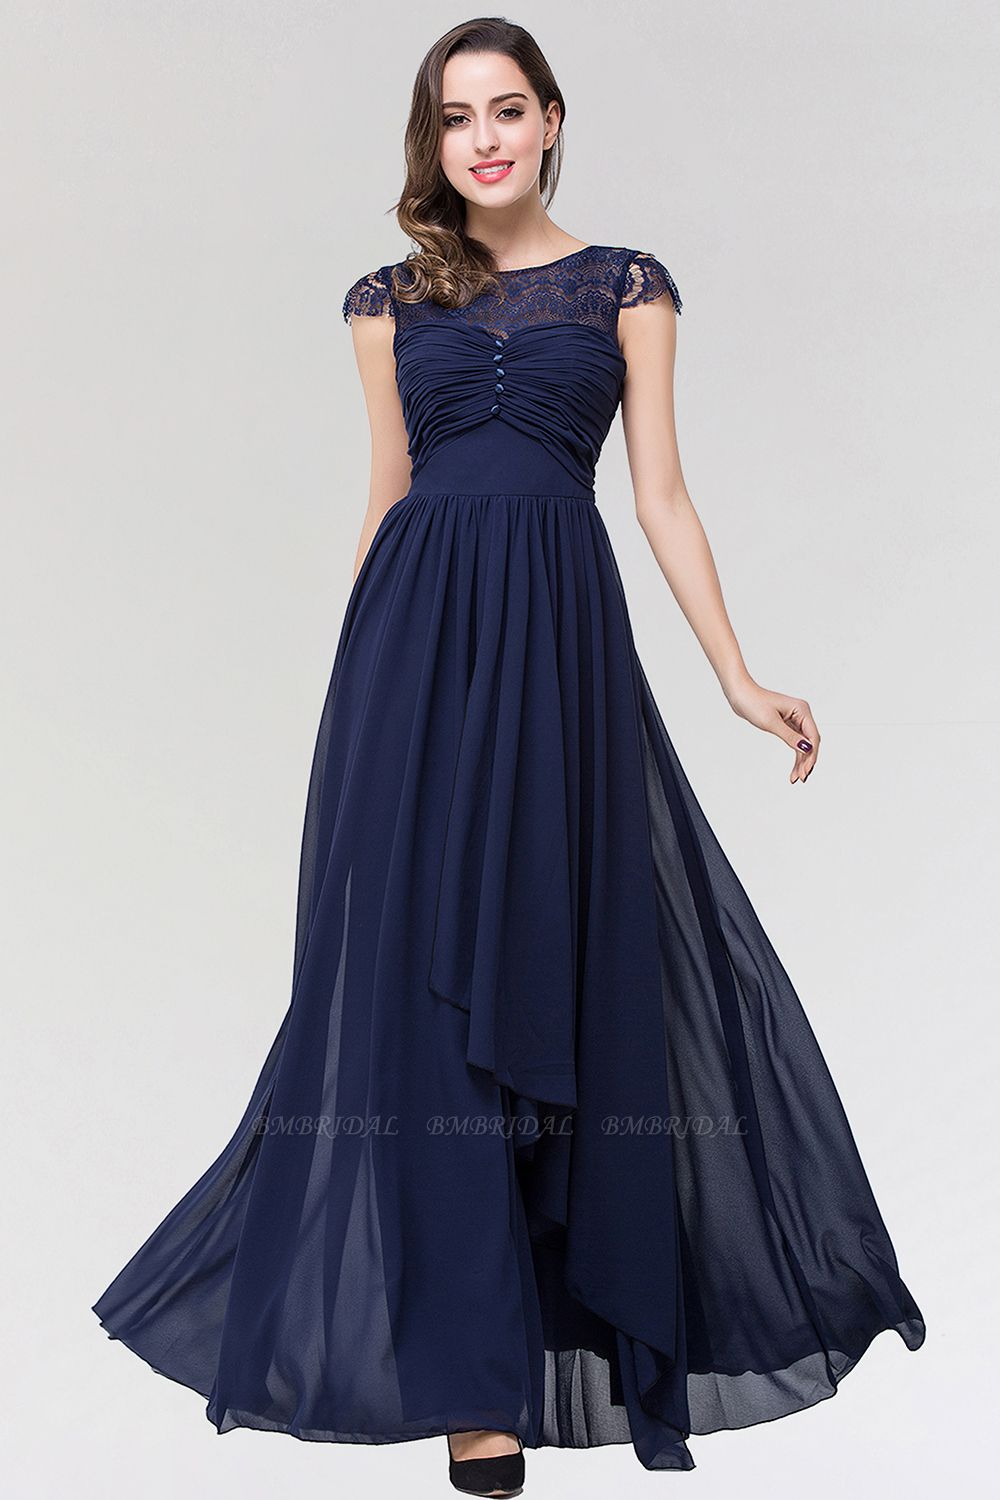 Elegant Lace Scoop Sleeveless Navy Bridesmaid Dress with Buttons